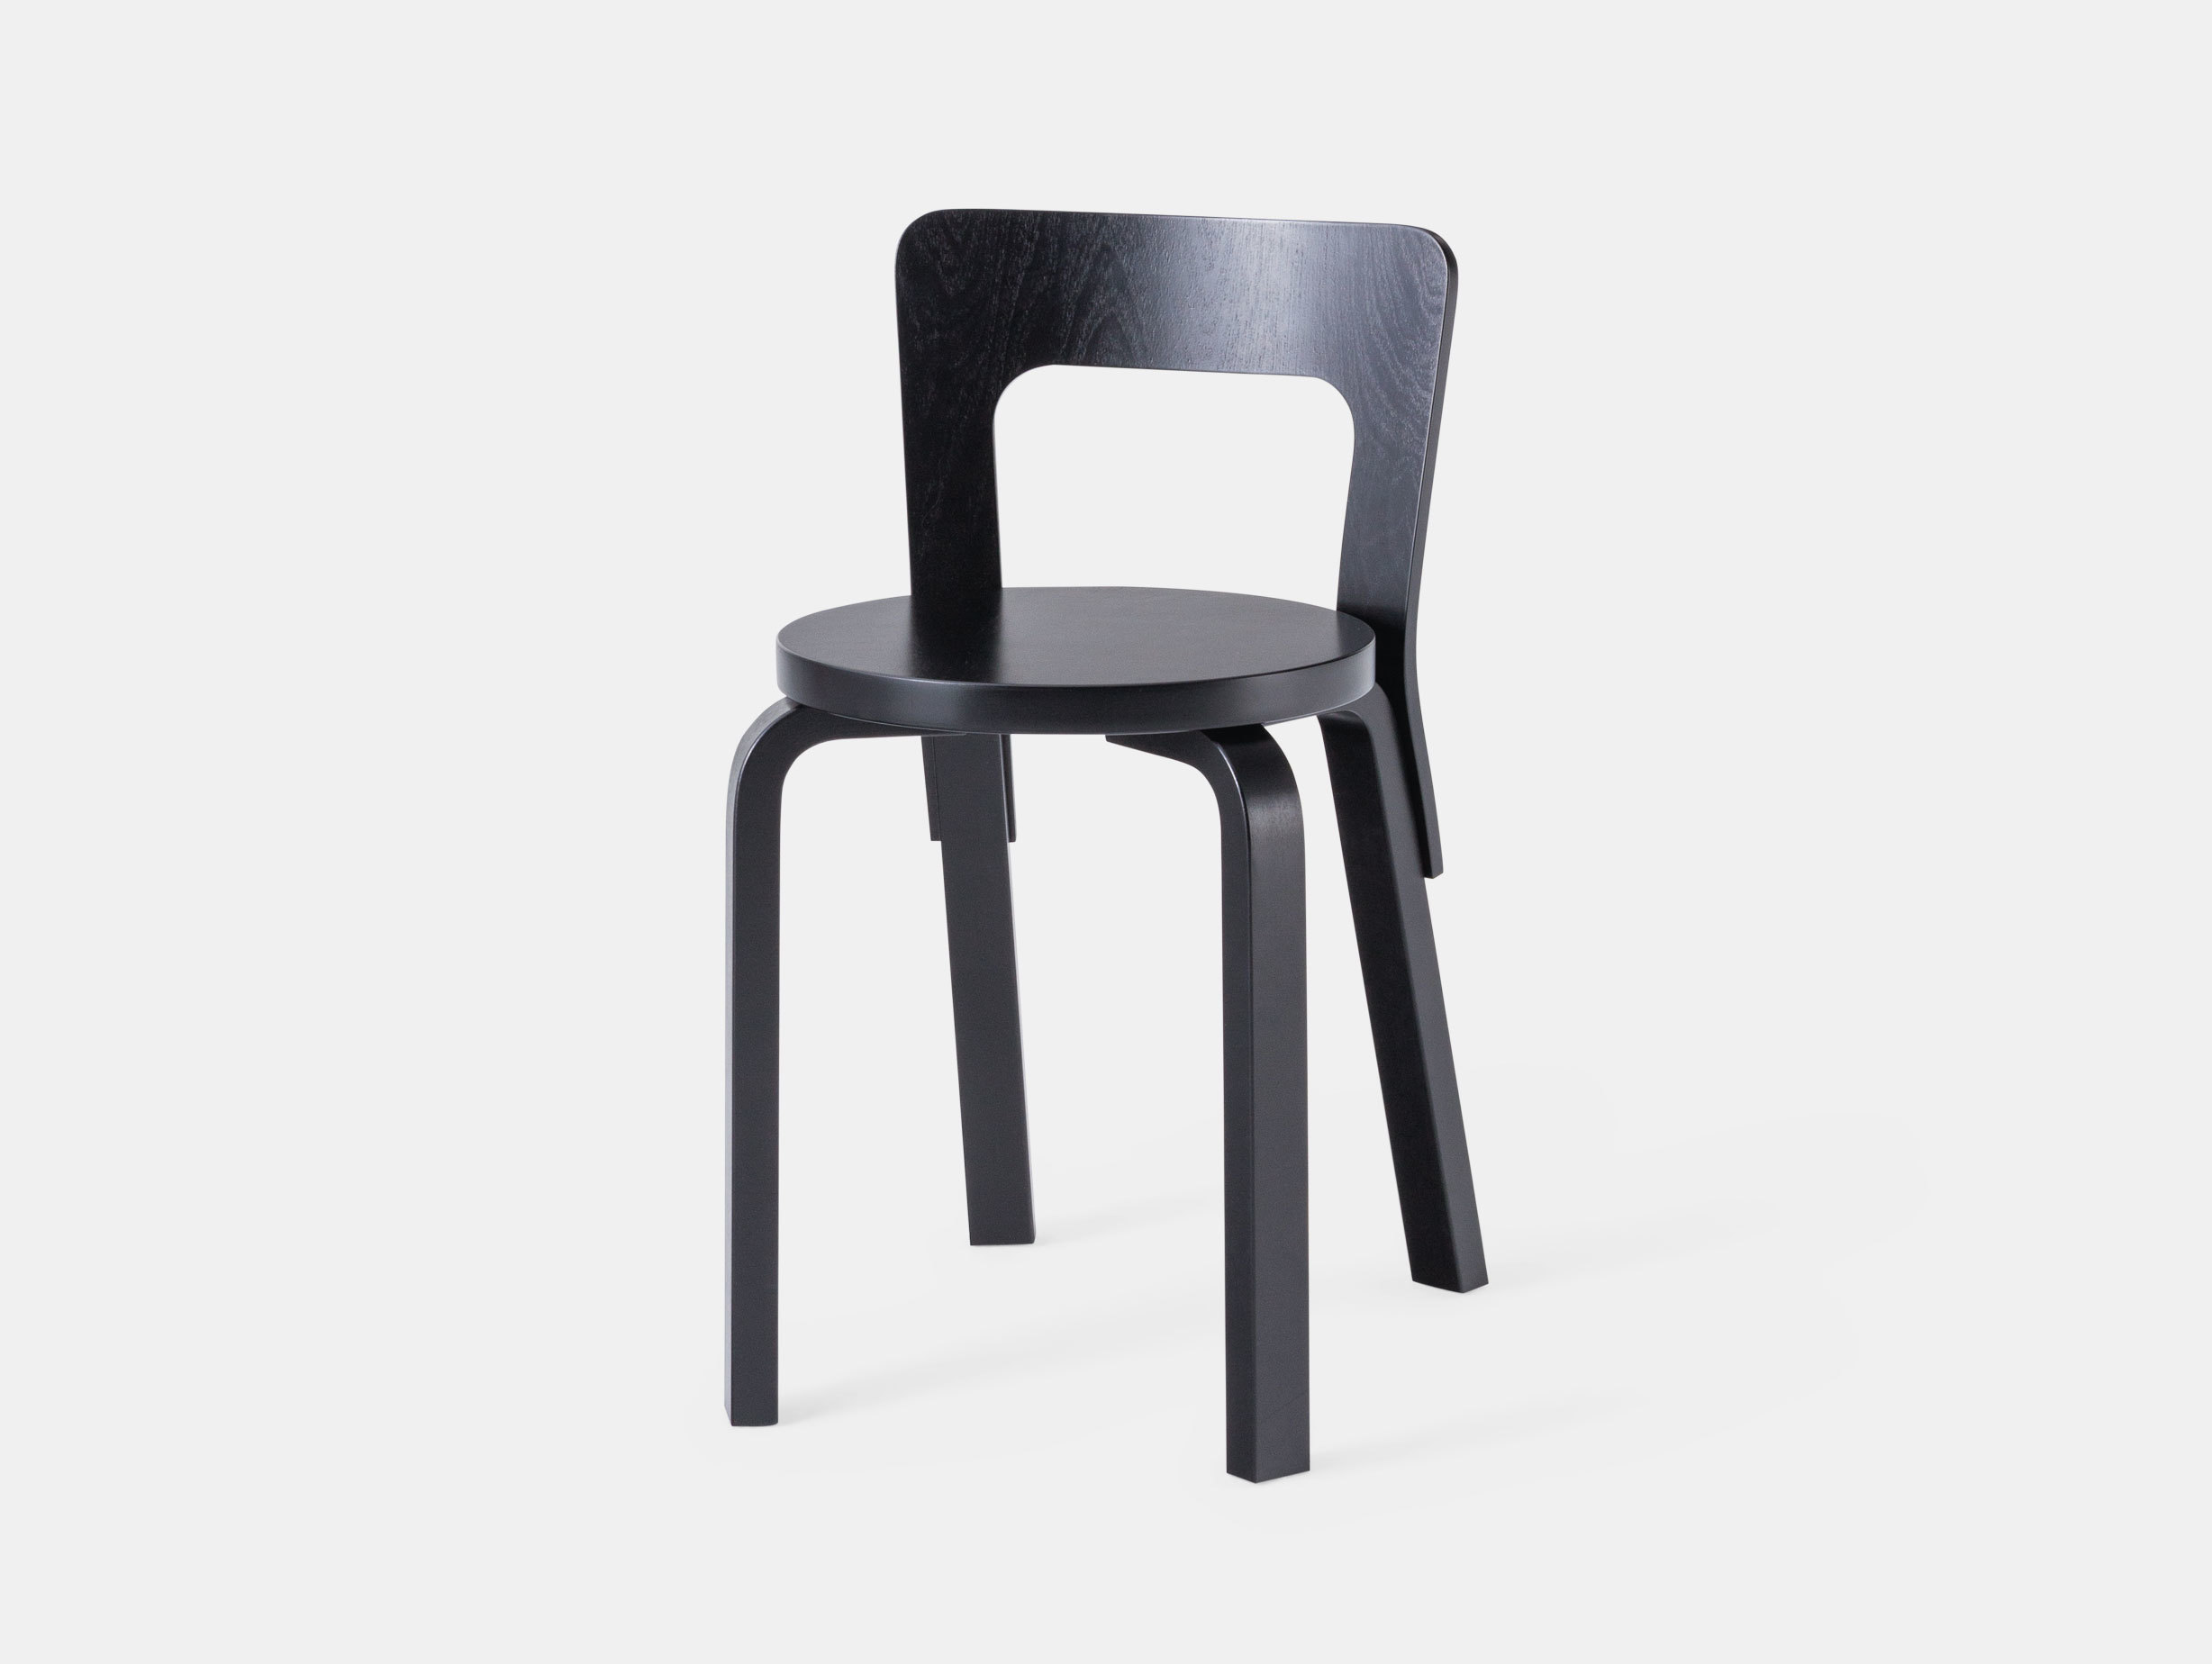 Chair 65 image 1